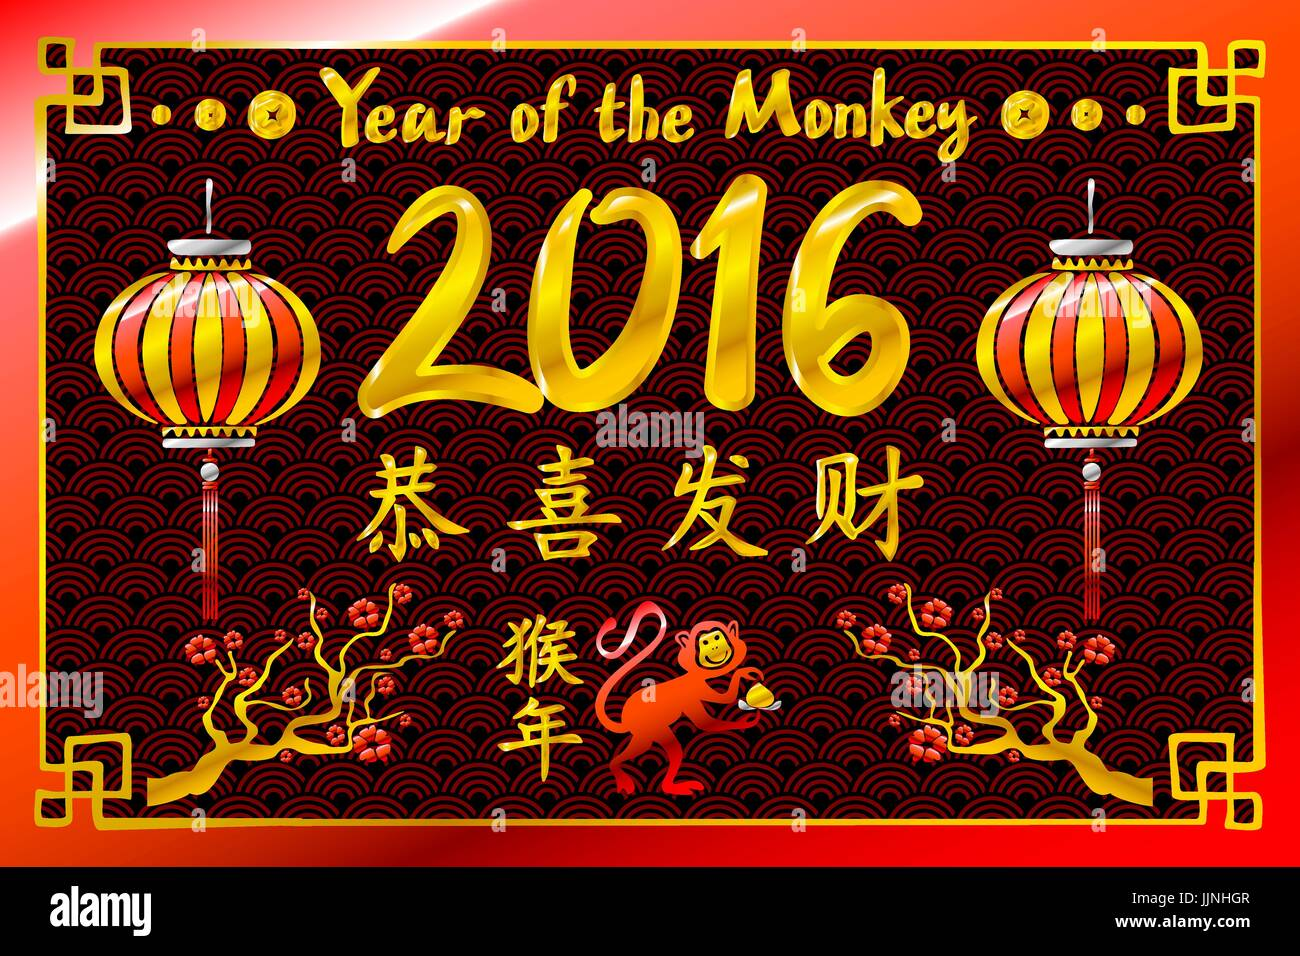 printable 2016 greeting card for the chinese new year of the monkey the image contains oriental gold nuggets gold ingots chinese paper lamps symb